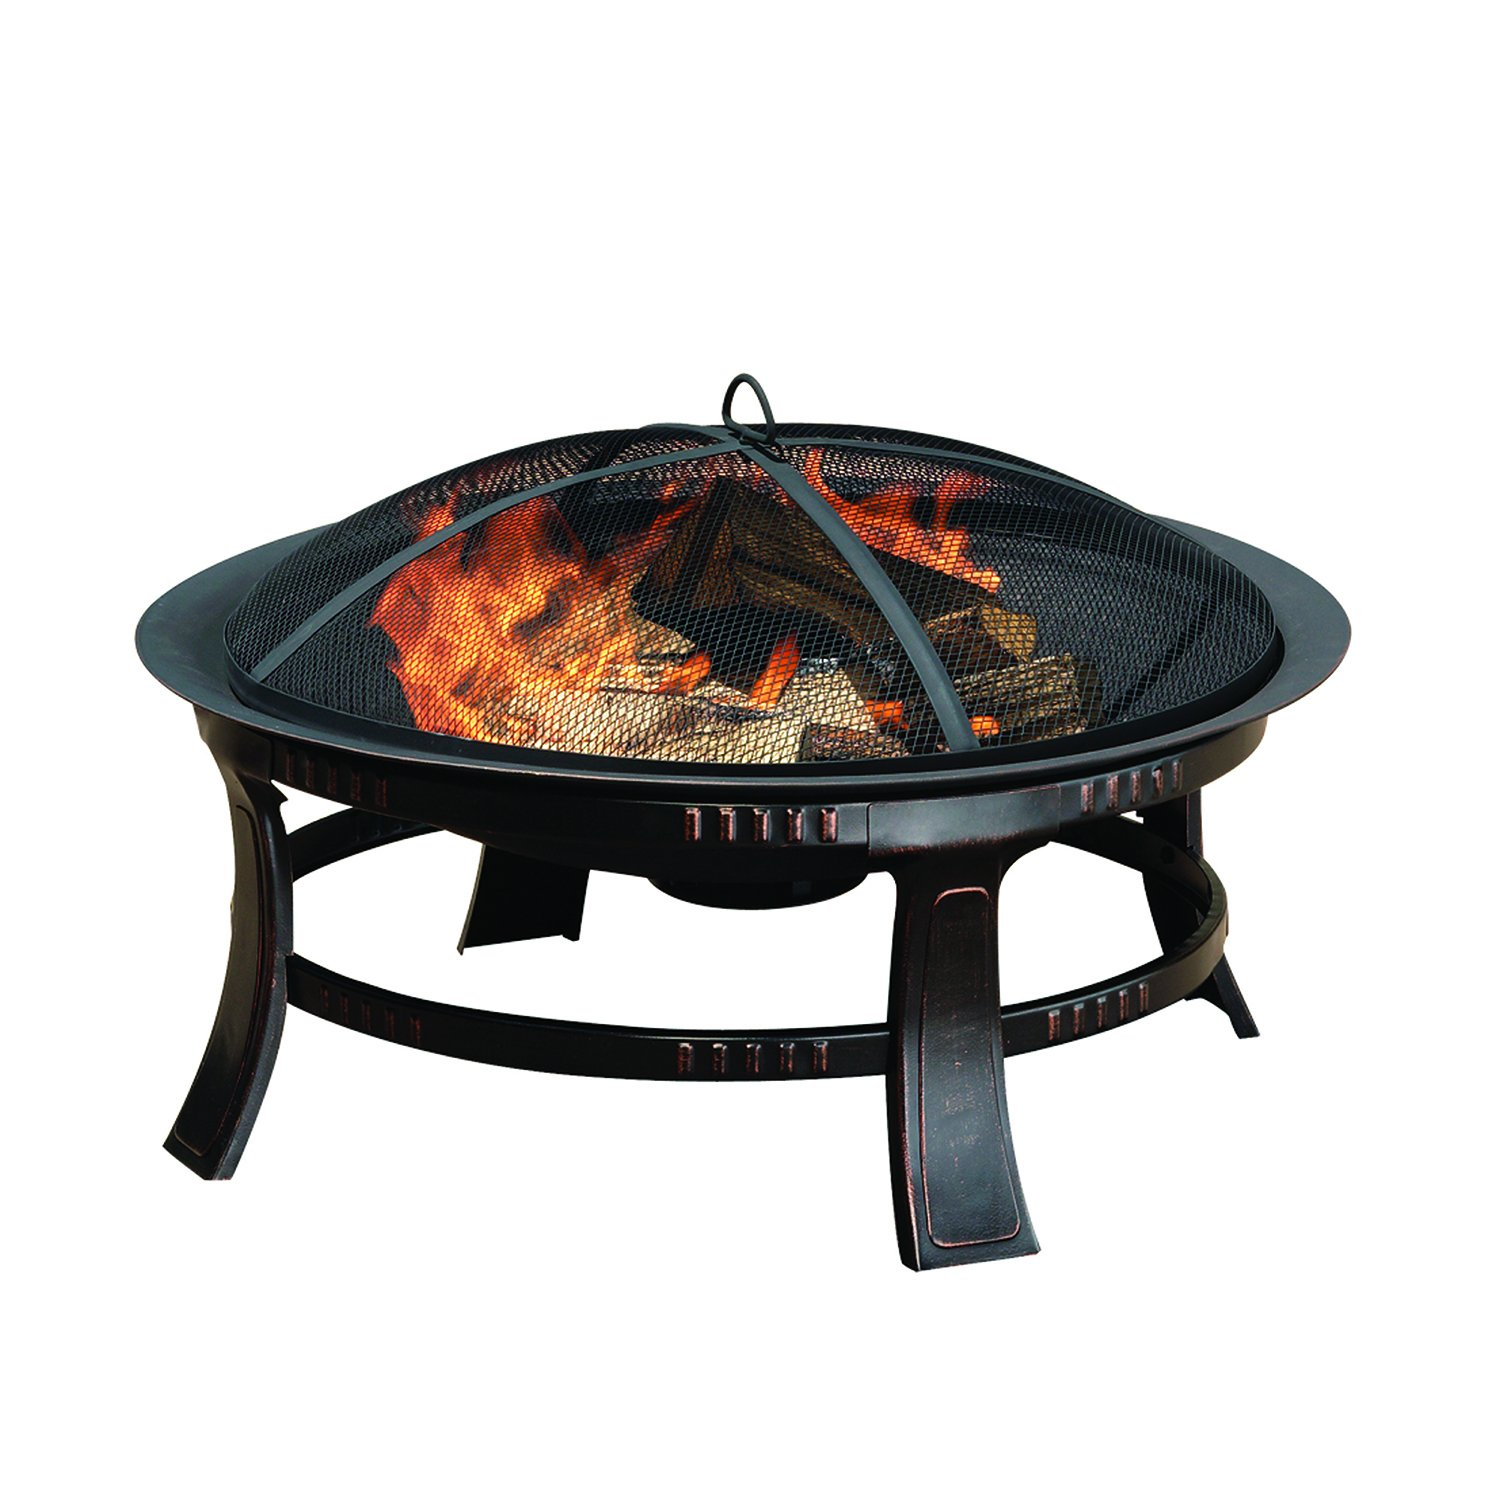 The Best Outdoor Fire Pit 4